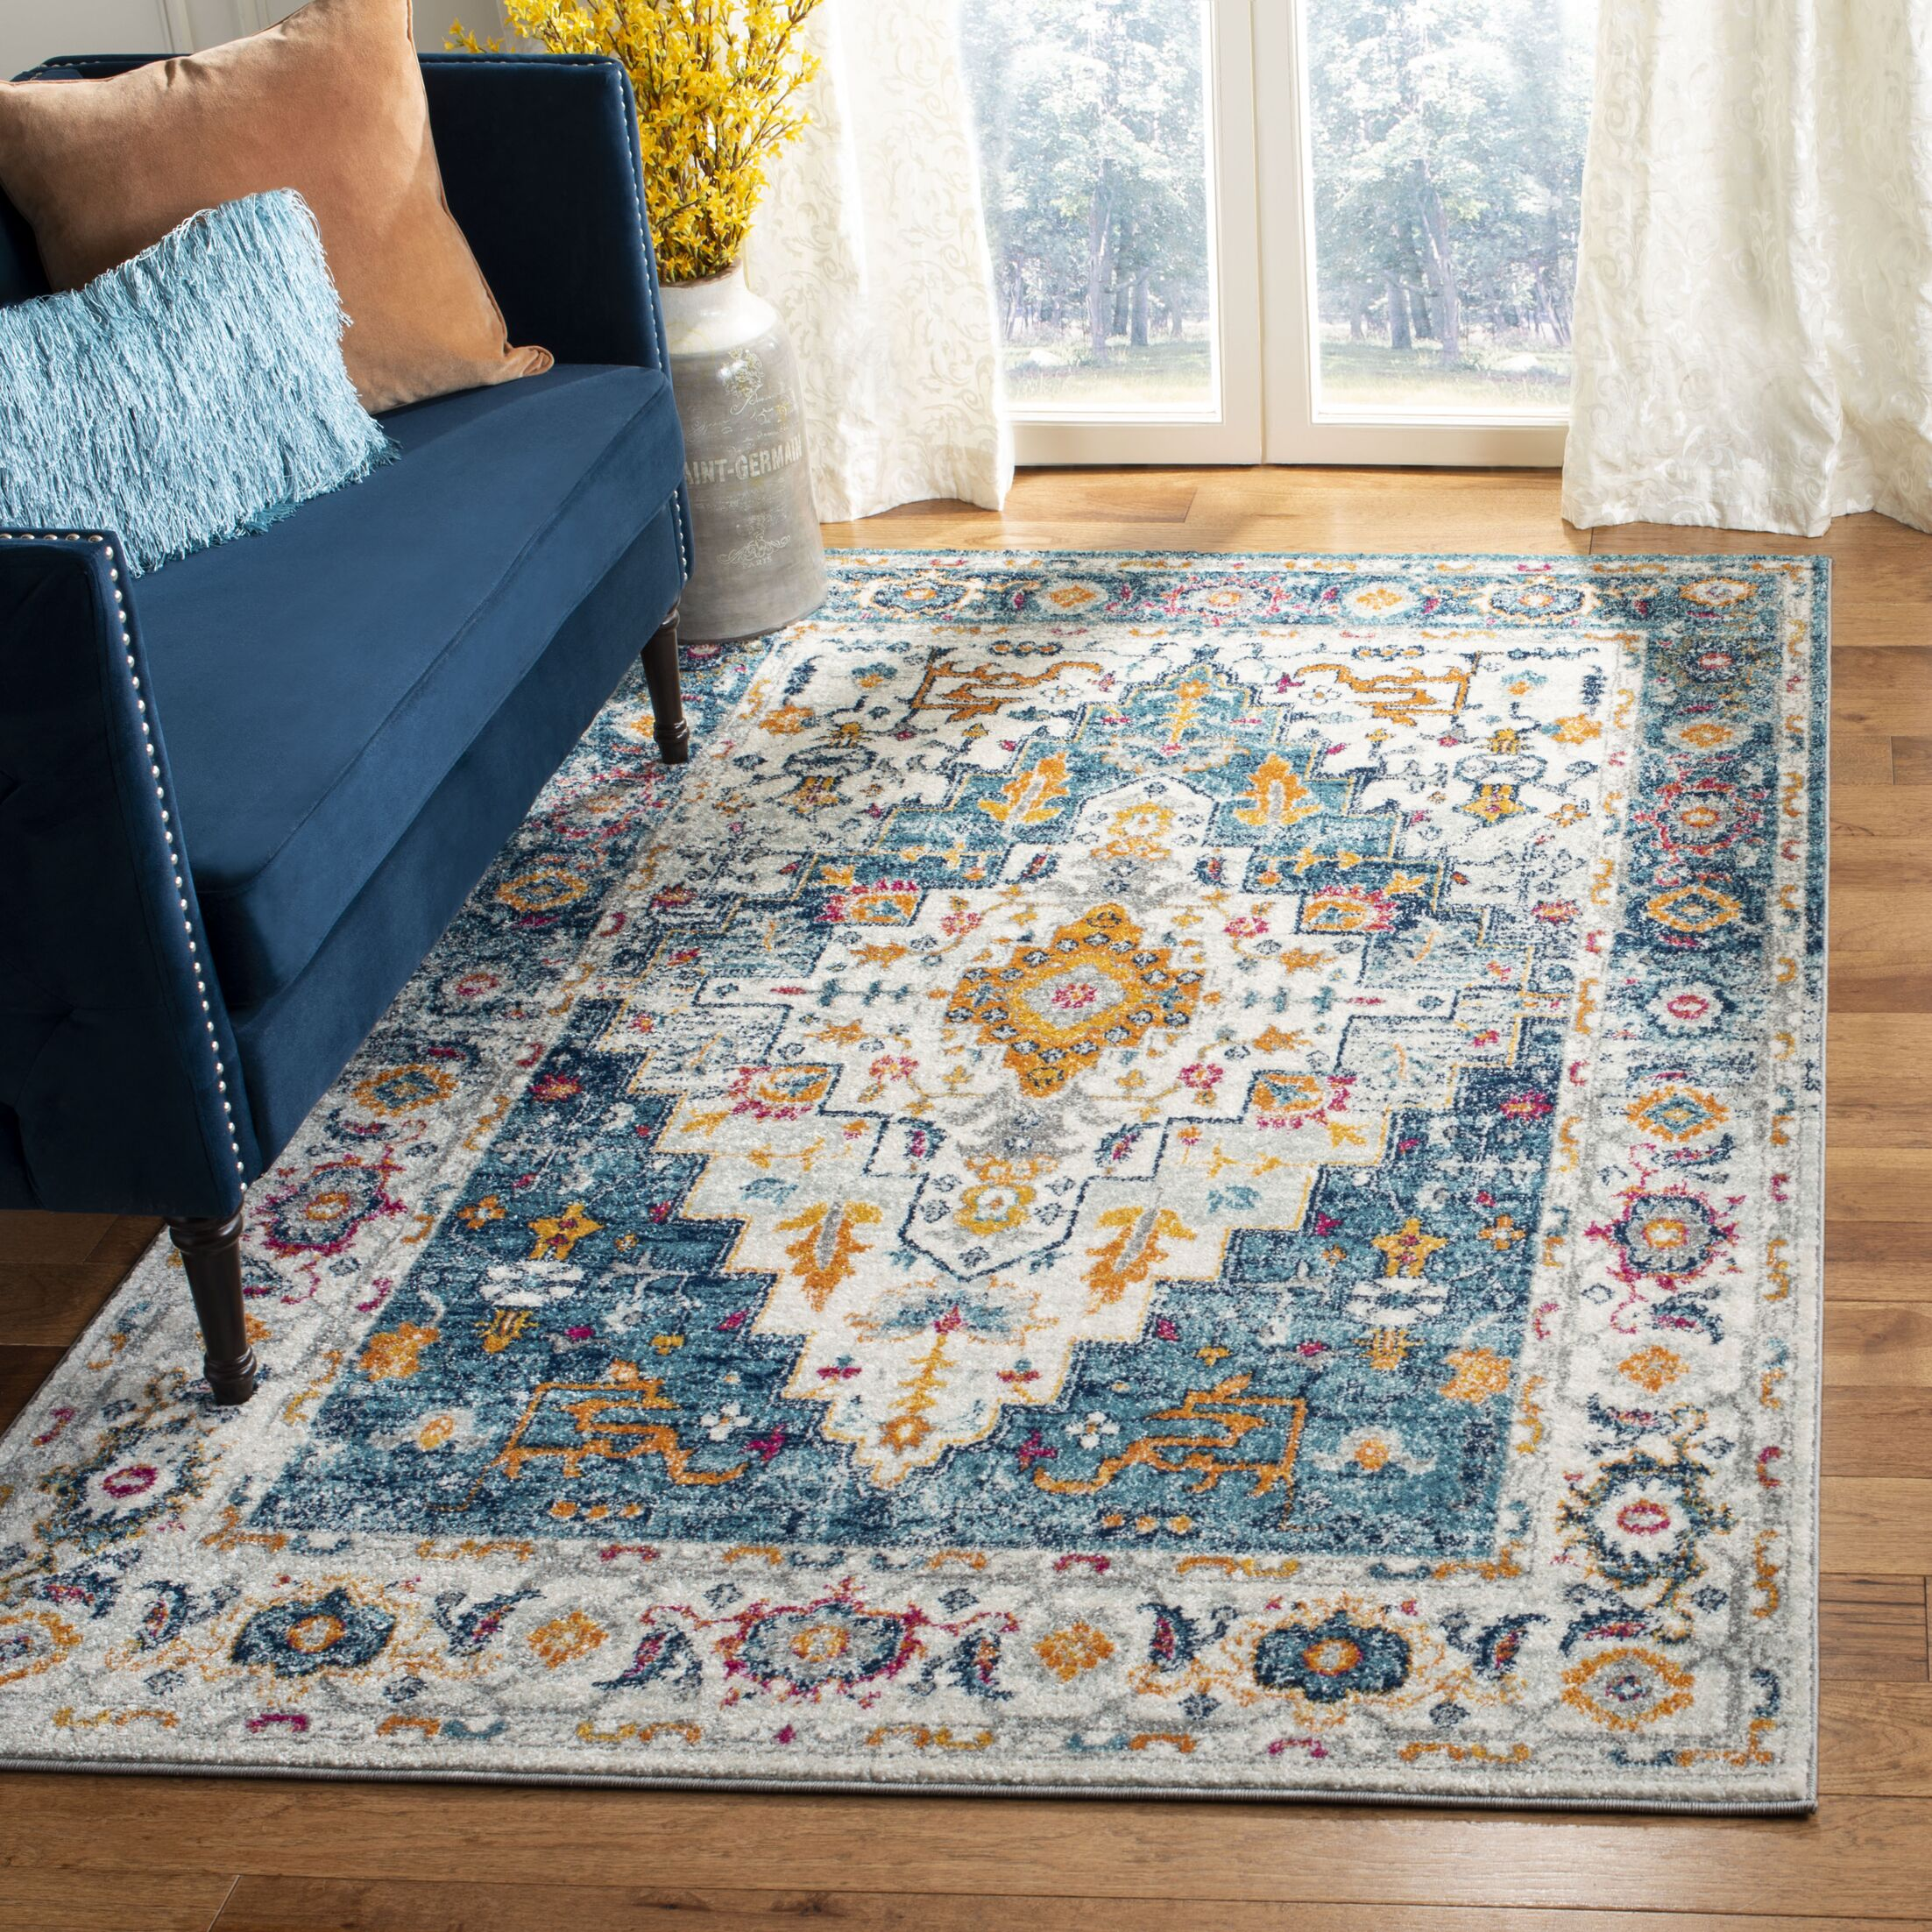 Grieve Turquoise/Ivory Area Rug Rug Size: Square 6'7